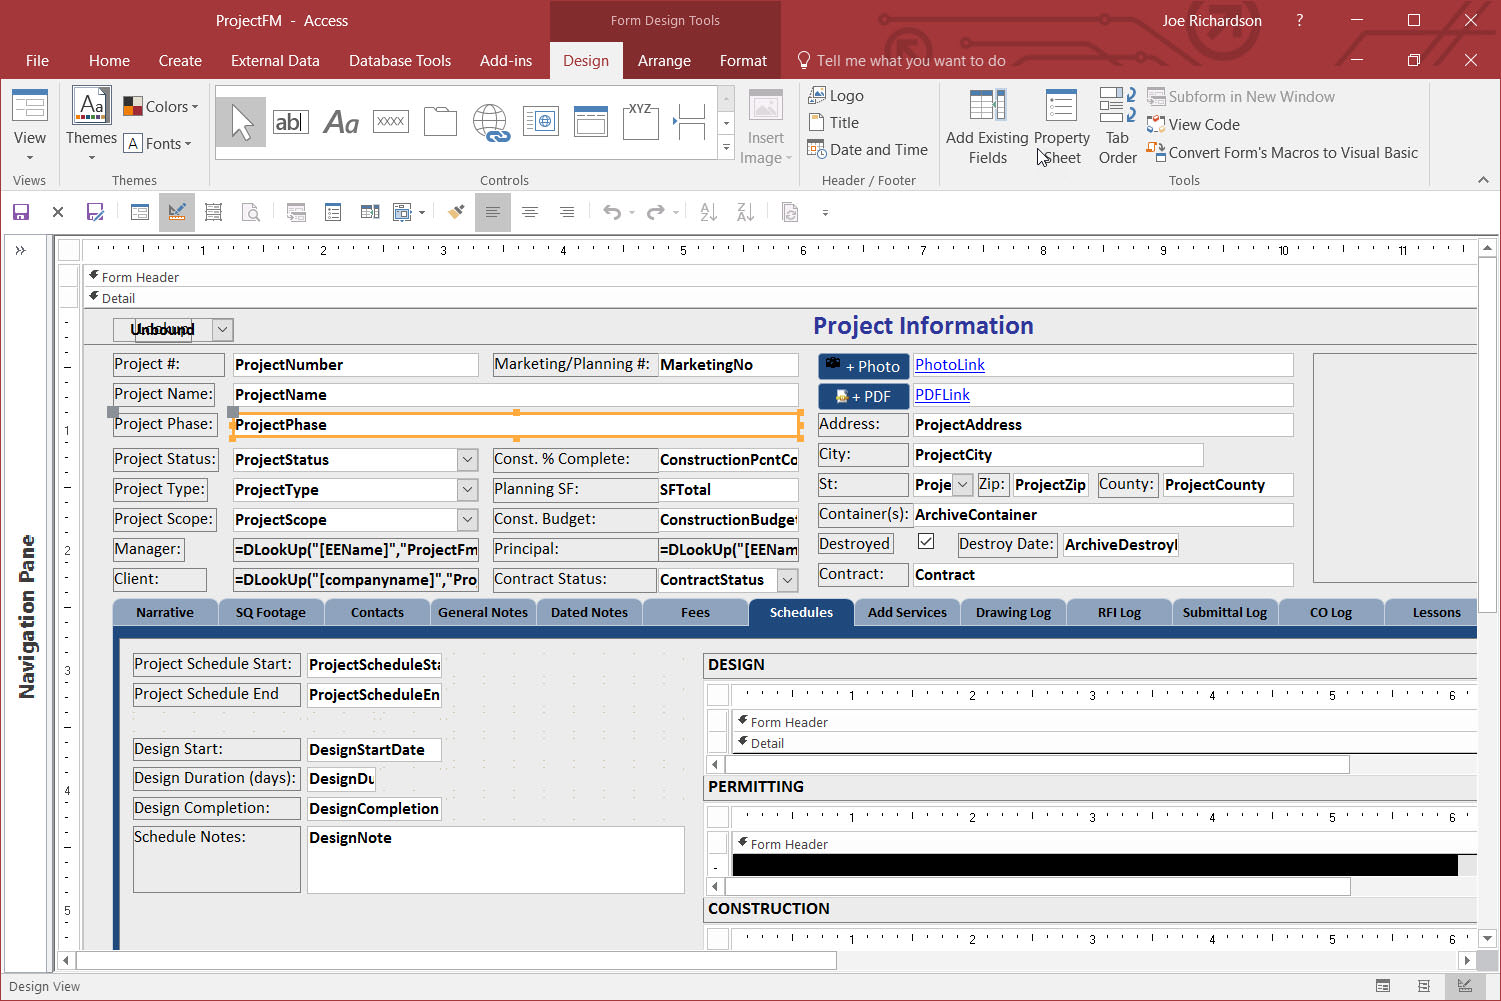 An access database form in design view with fields, tabs and buttons